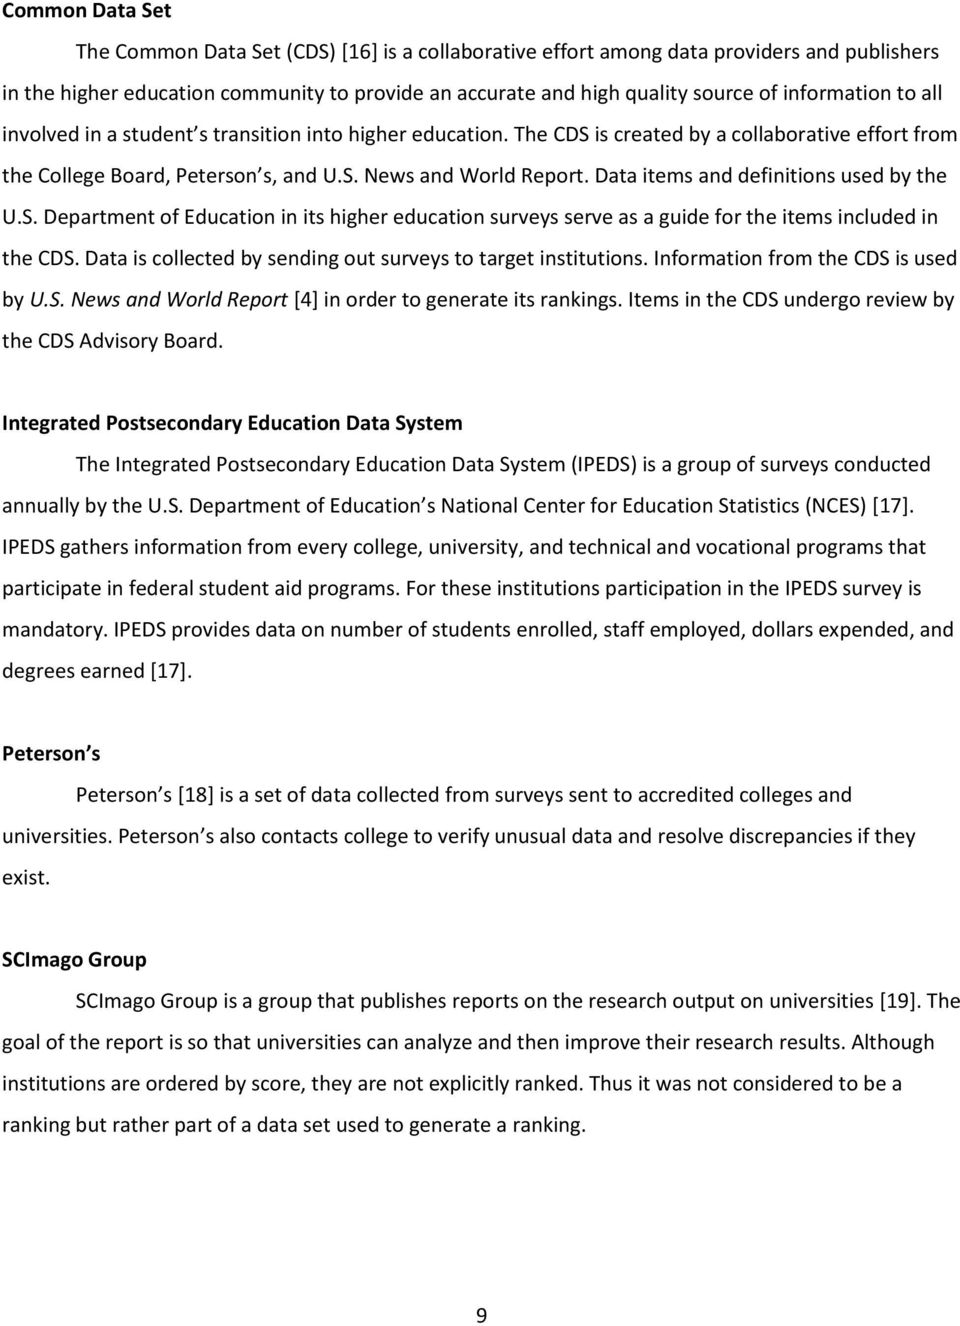 Data items and definitions used by the U.S. Department of Education in its higher education surveys serve as a guide for the items included in the CDS.